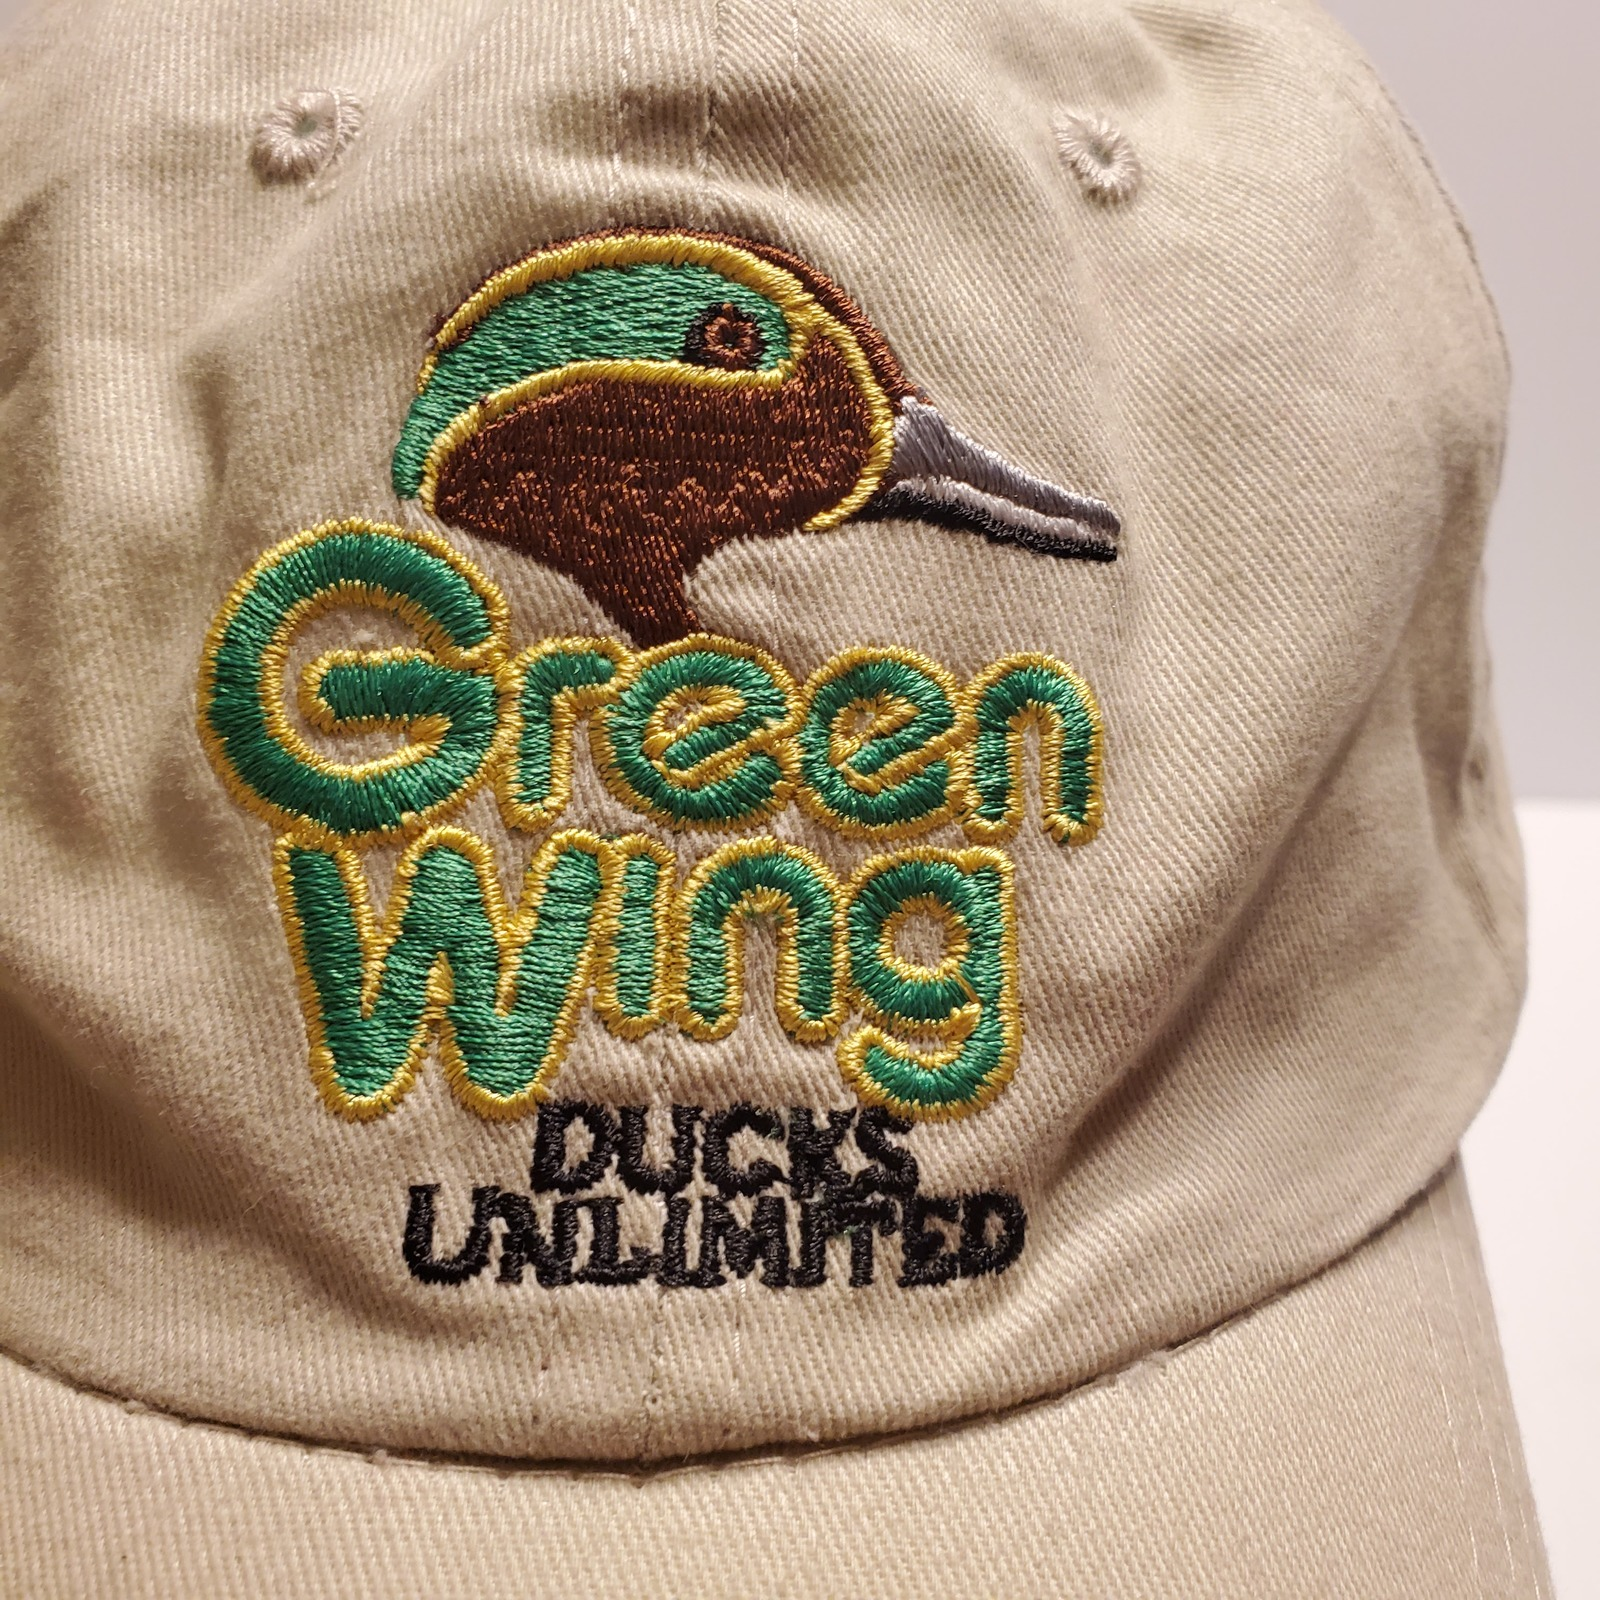 Green Wing Ducks Unlimited Adjustable Hat One Size Fits Most. Dorfman Pacific.   image 7